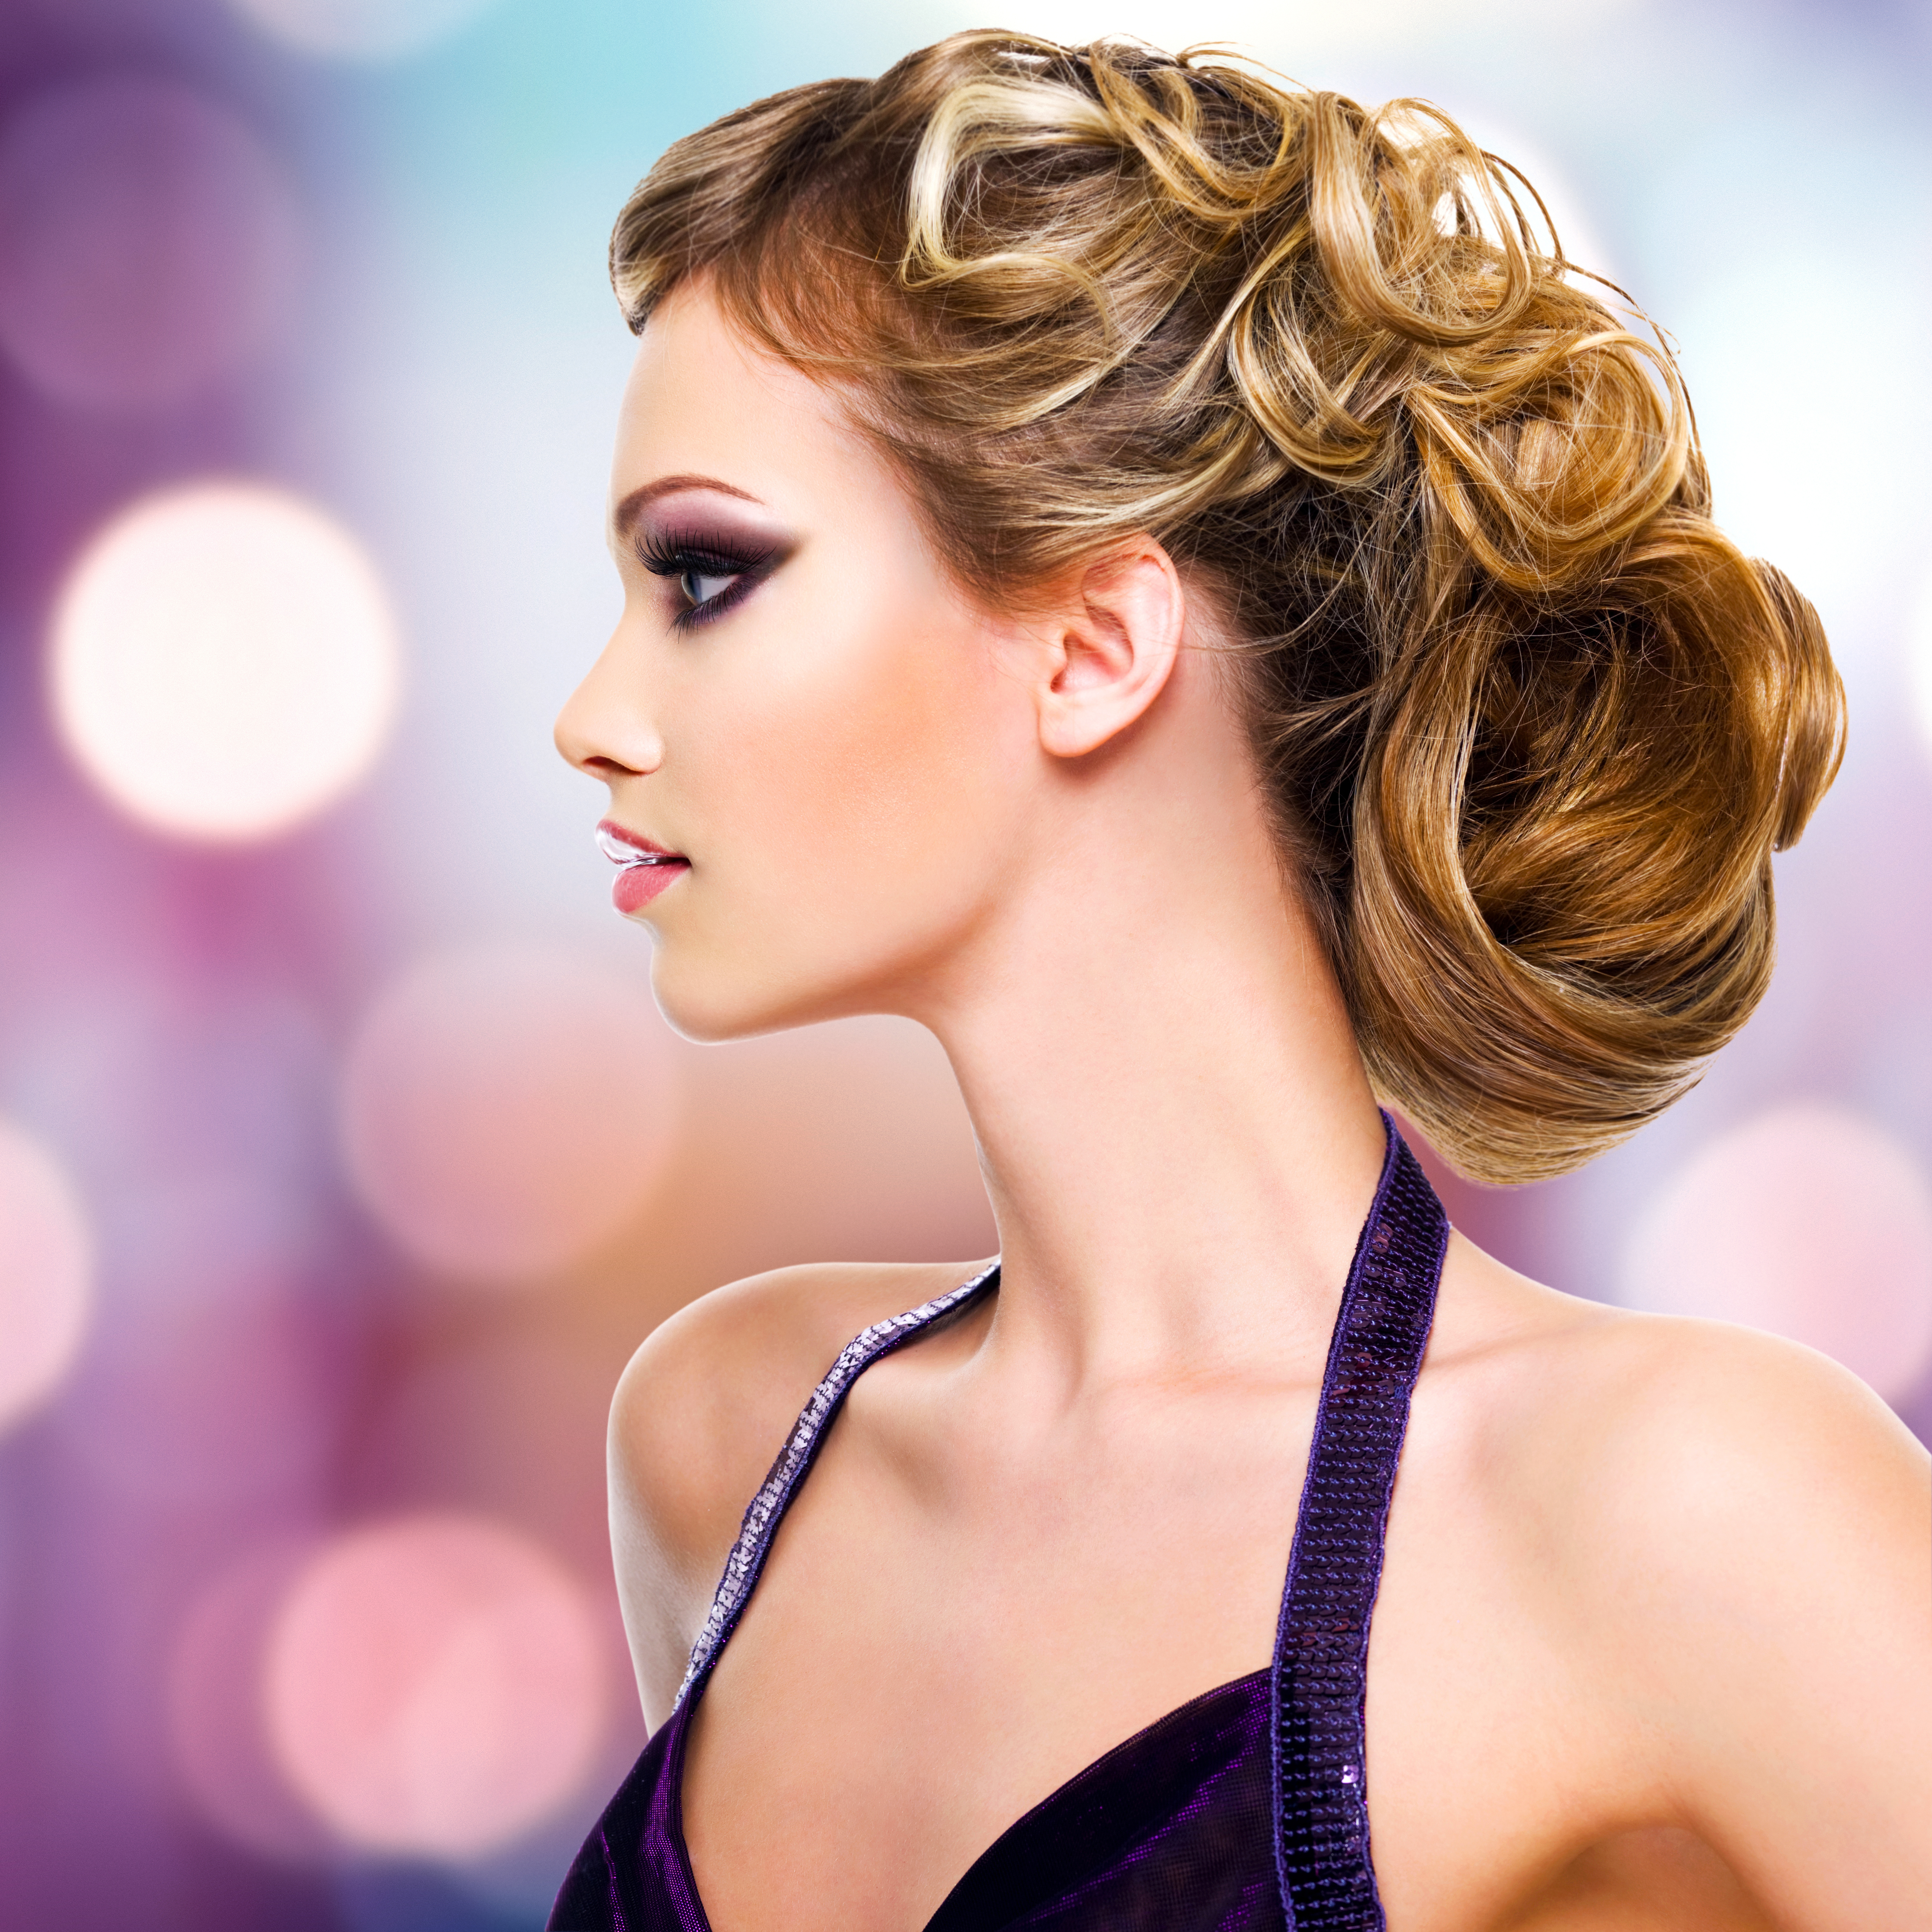 hairstyle hair and makeup artistry